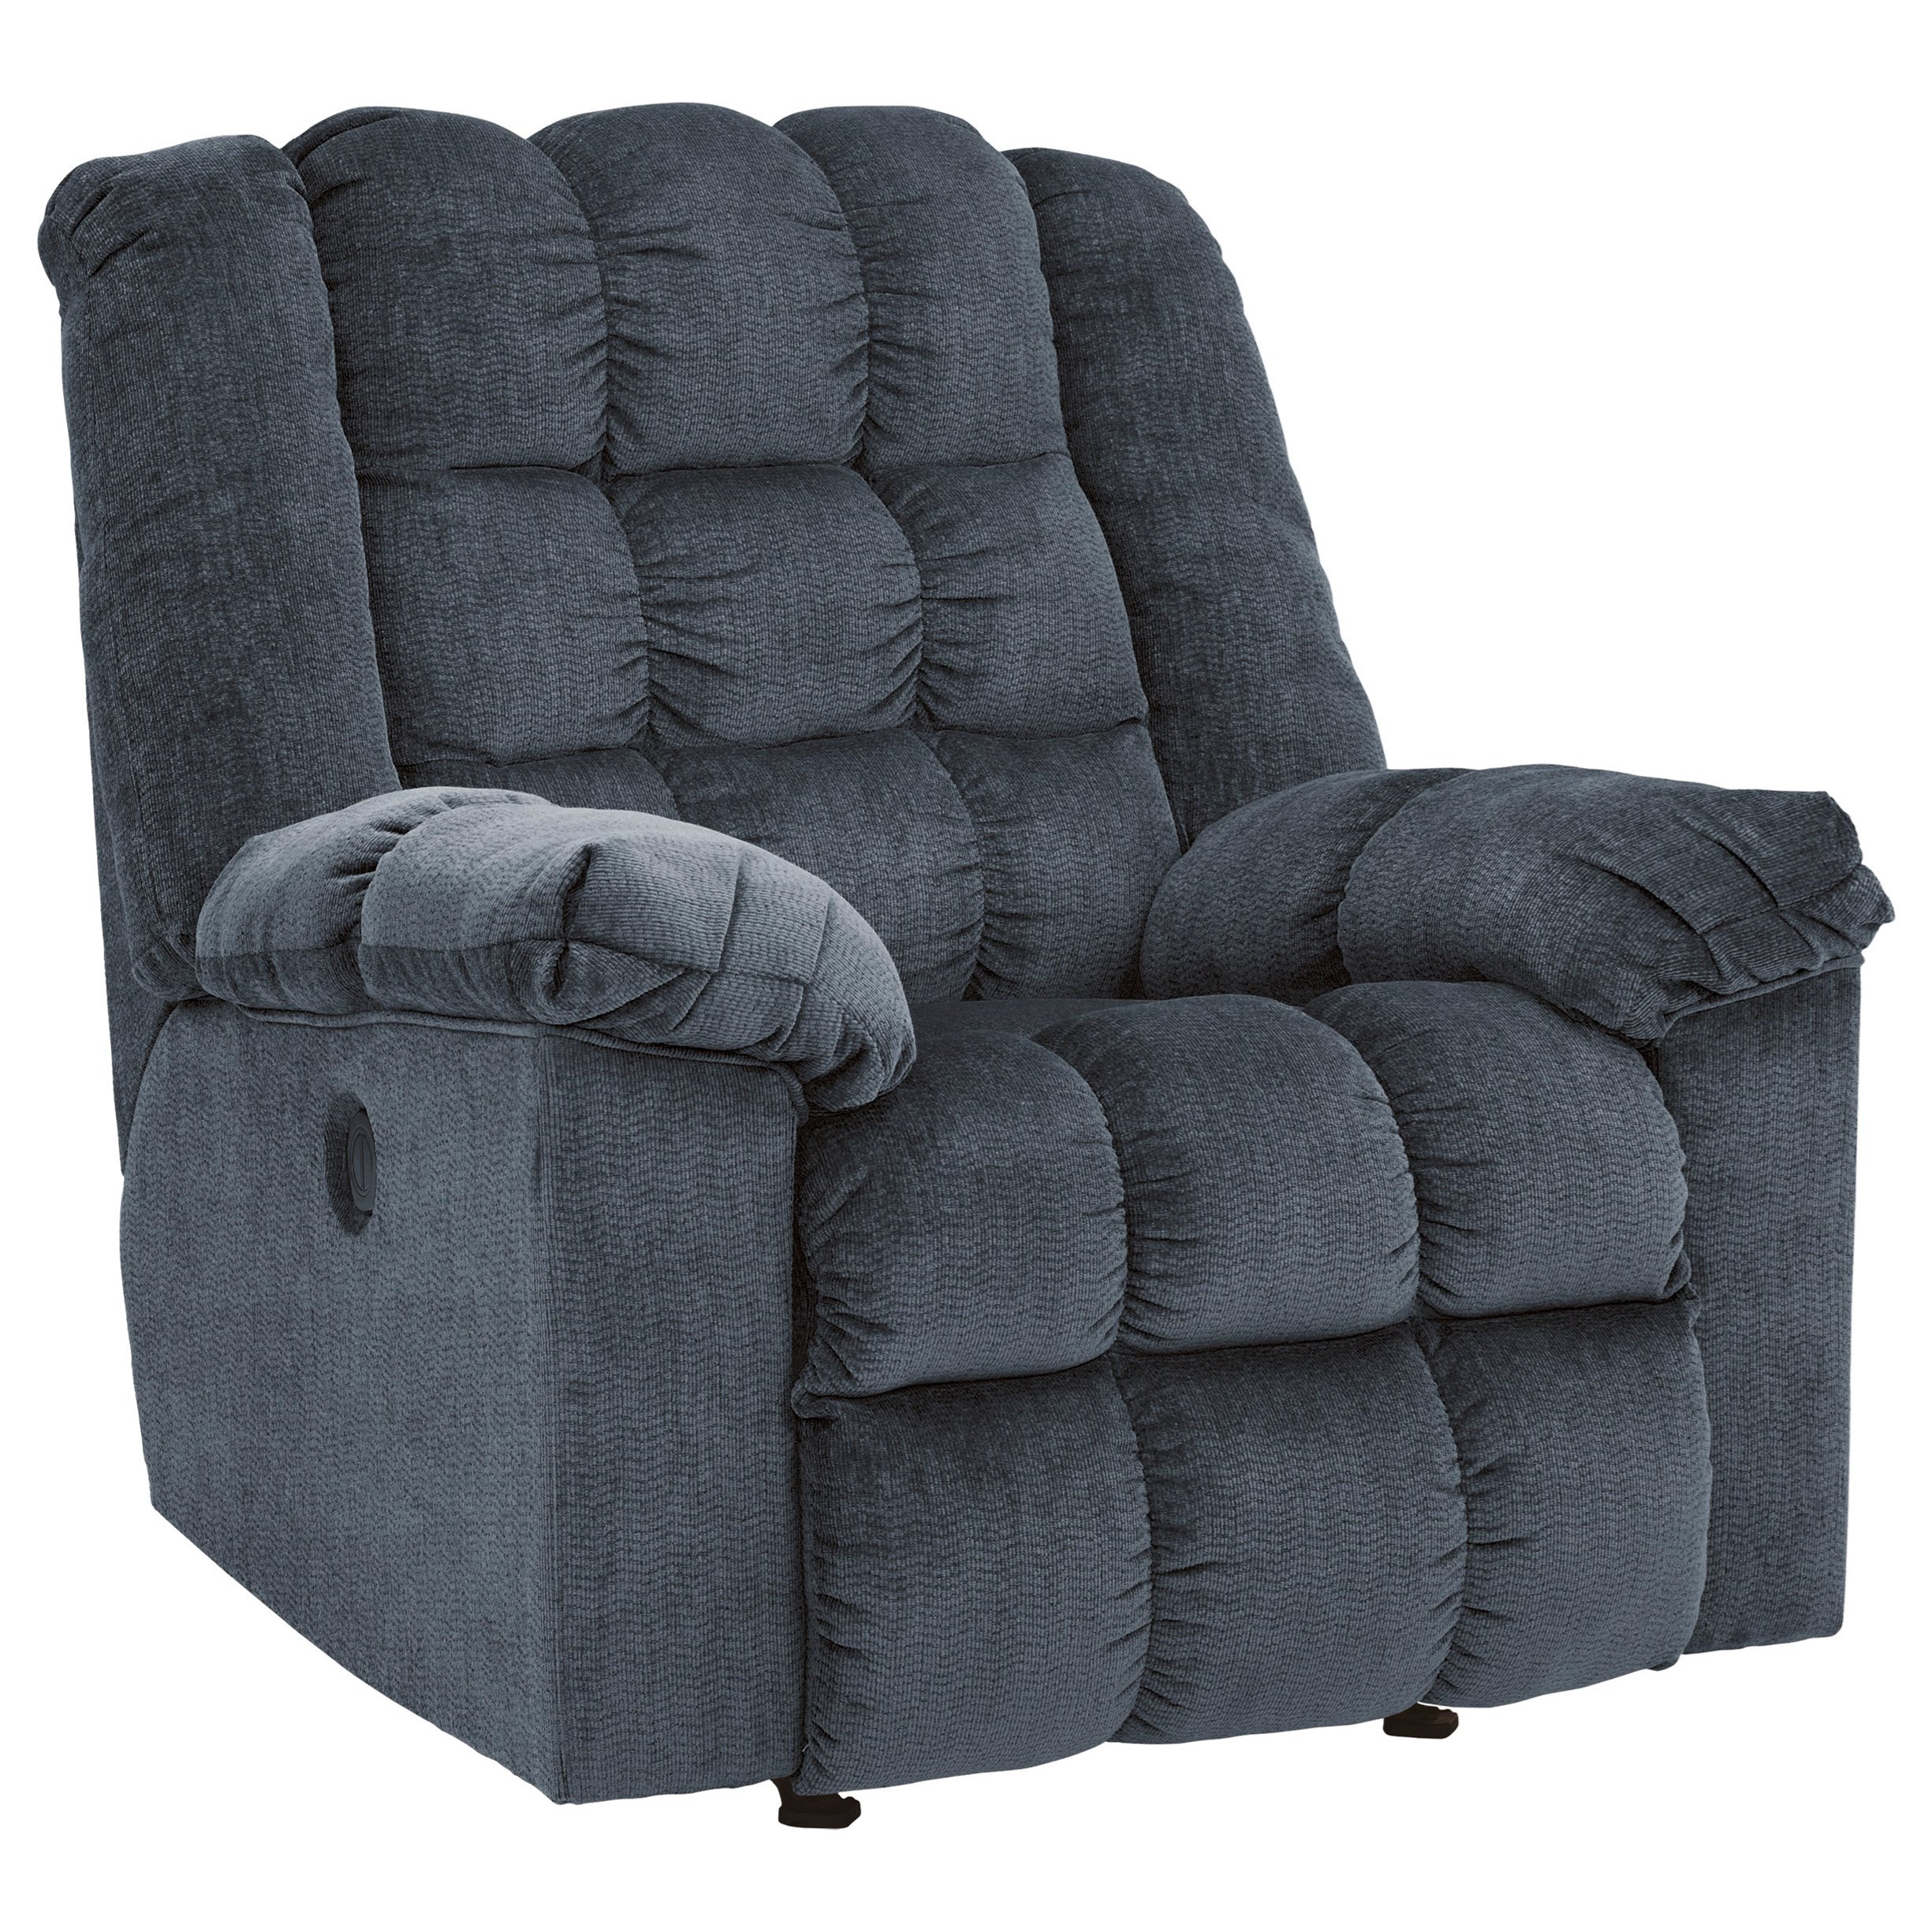 Ludden - Blue Power Rocker Recliner by Signature Design by Ashley at Lapeer Furniture & Mattress Center